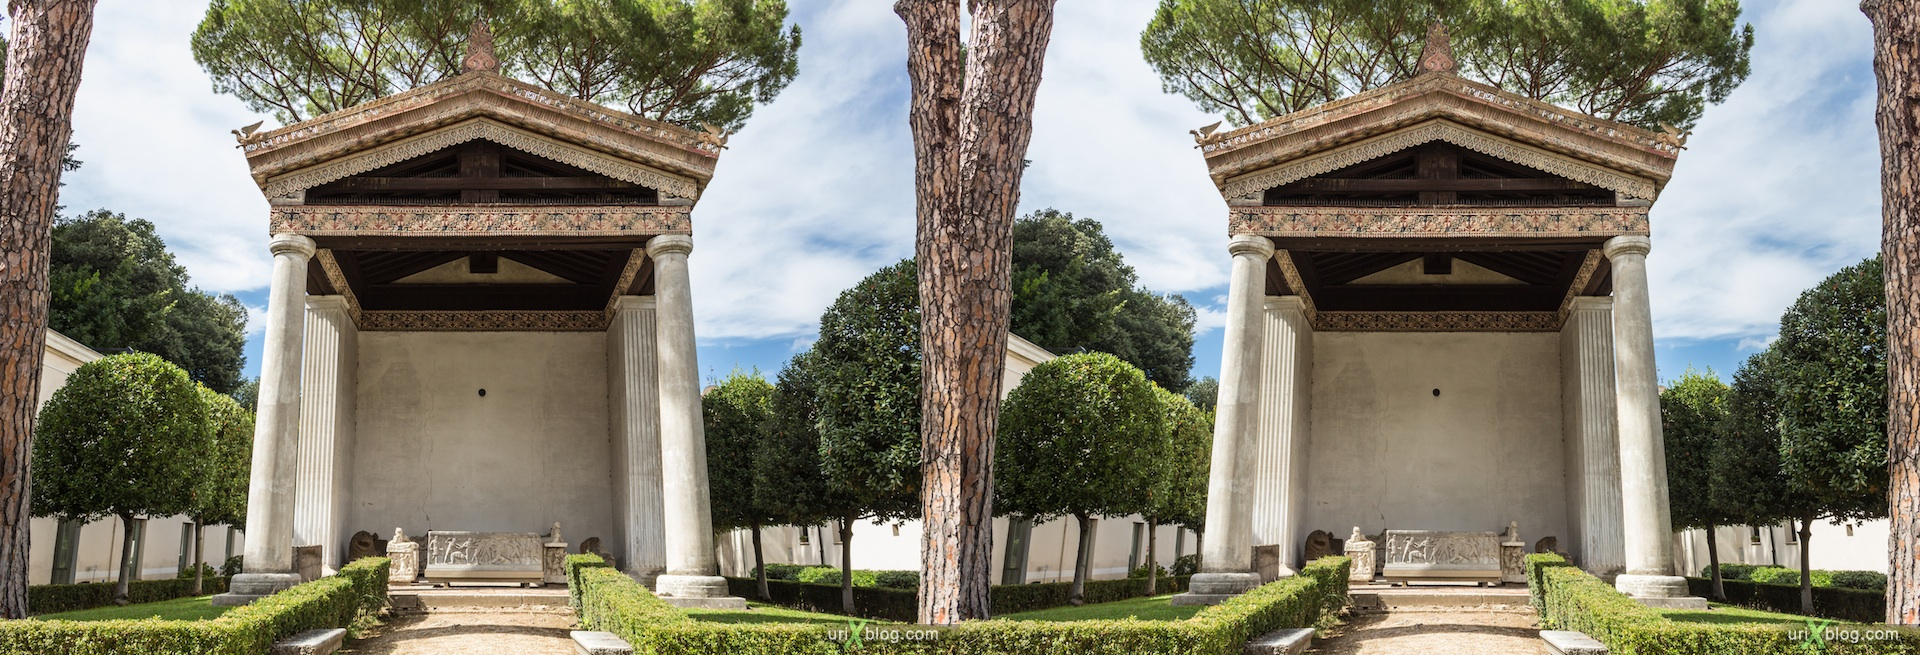 2012, Villa Giulia, Etruscan Museum, Rome, Italy, 3D, stereo pair, cross-eyed, crossview, cross view stereo pair